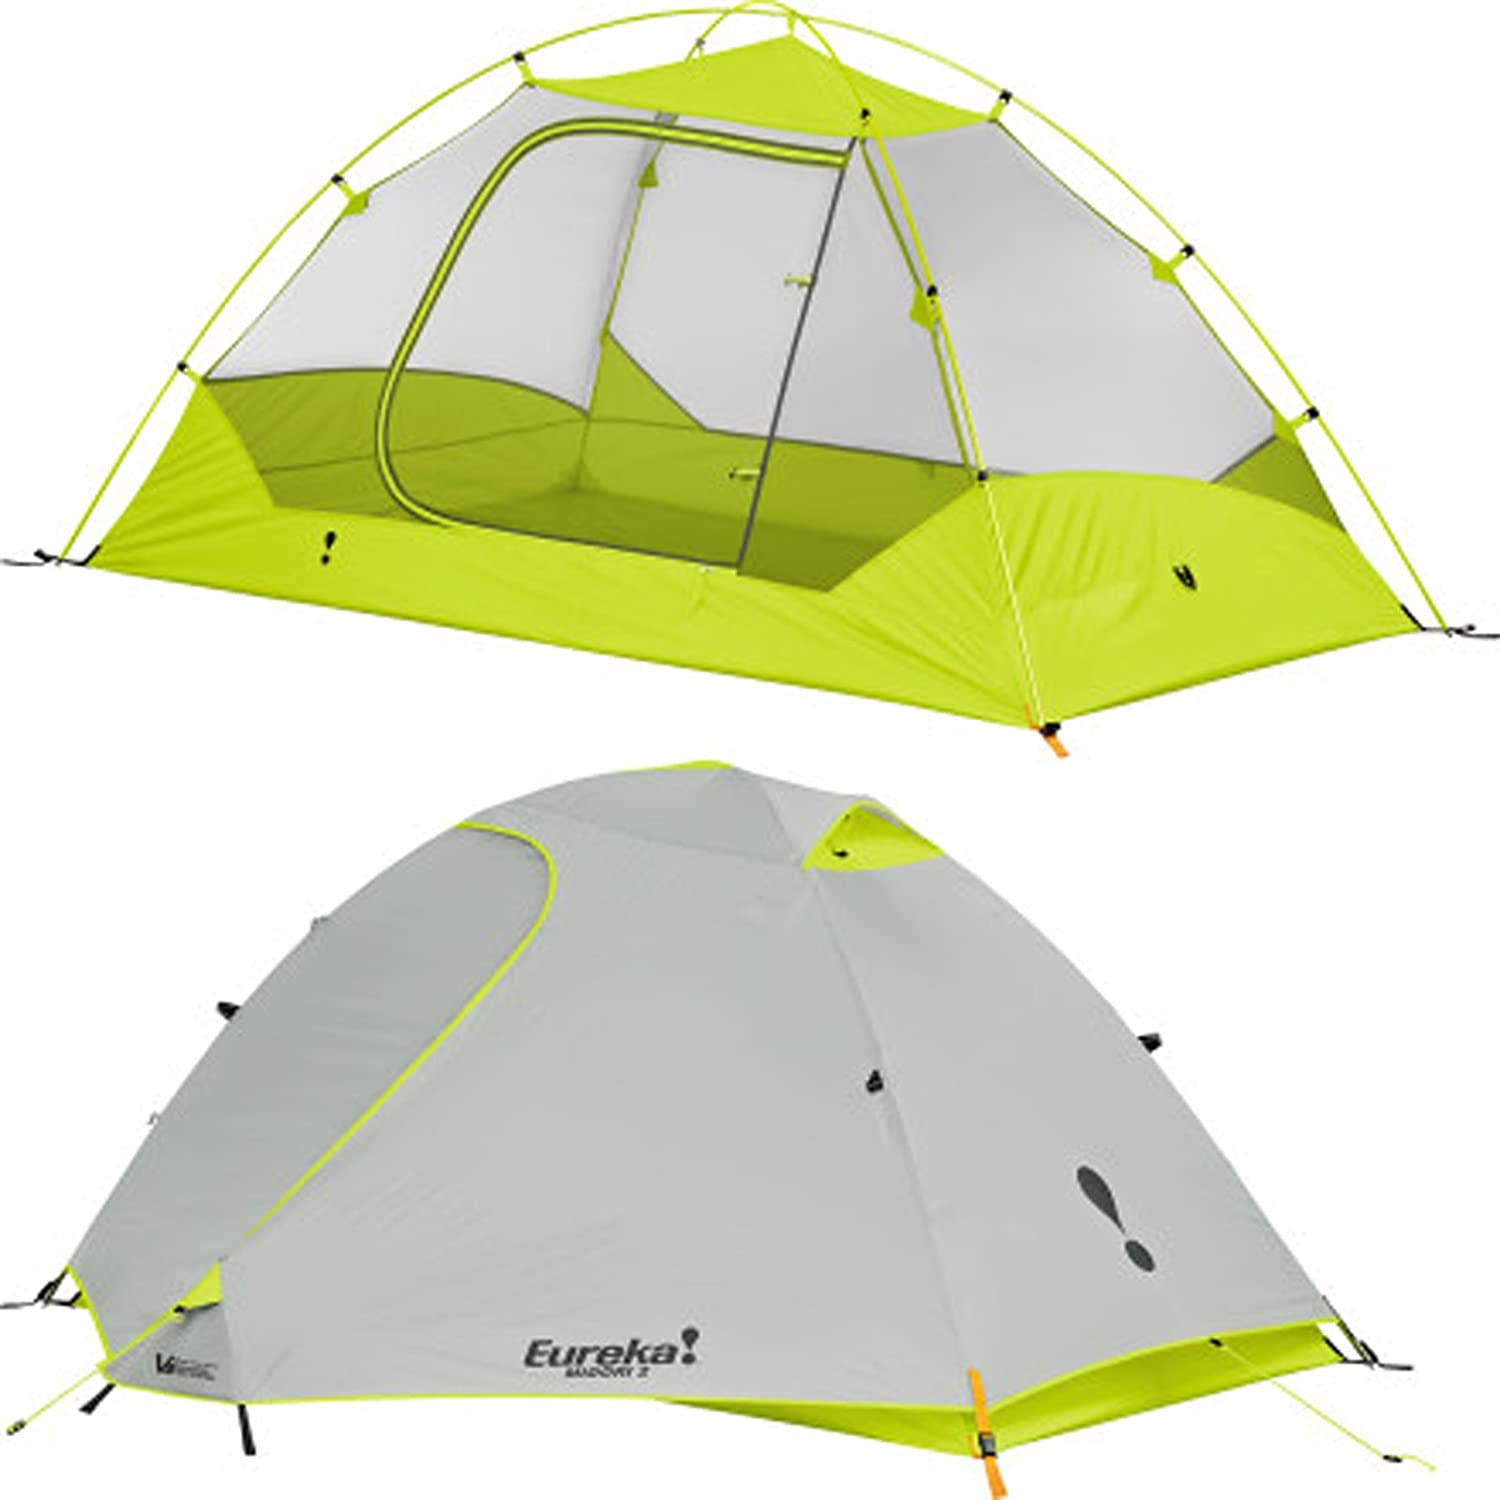 Amazon.com  Eureka Midori 2 Person Waterproof Backpacking Tent Lime/Grey  Backpacking Tents  Sports u0026 Outdoors  sc 1 st  Amazon.com & Amazon.com : Eureka Midori 2 Person Waterproof Backpacking Tent ...